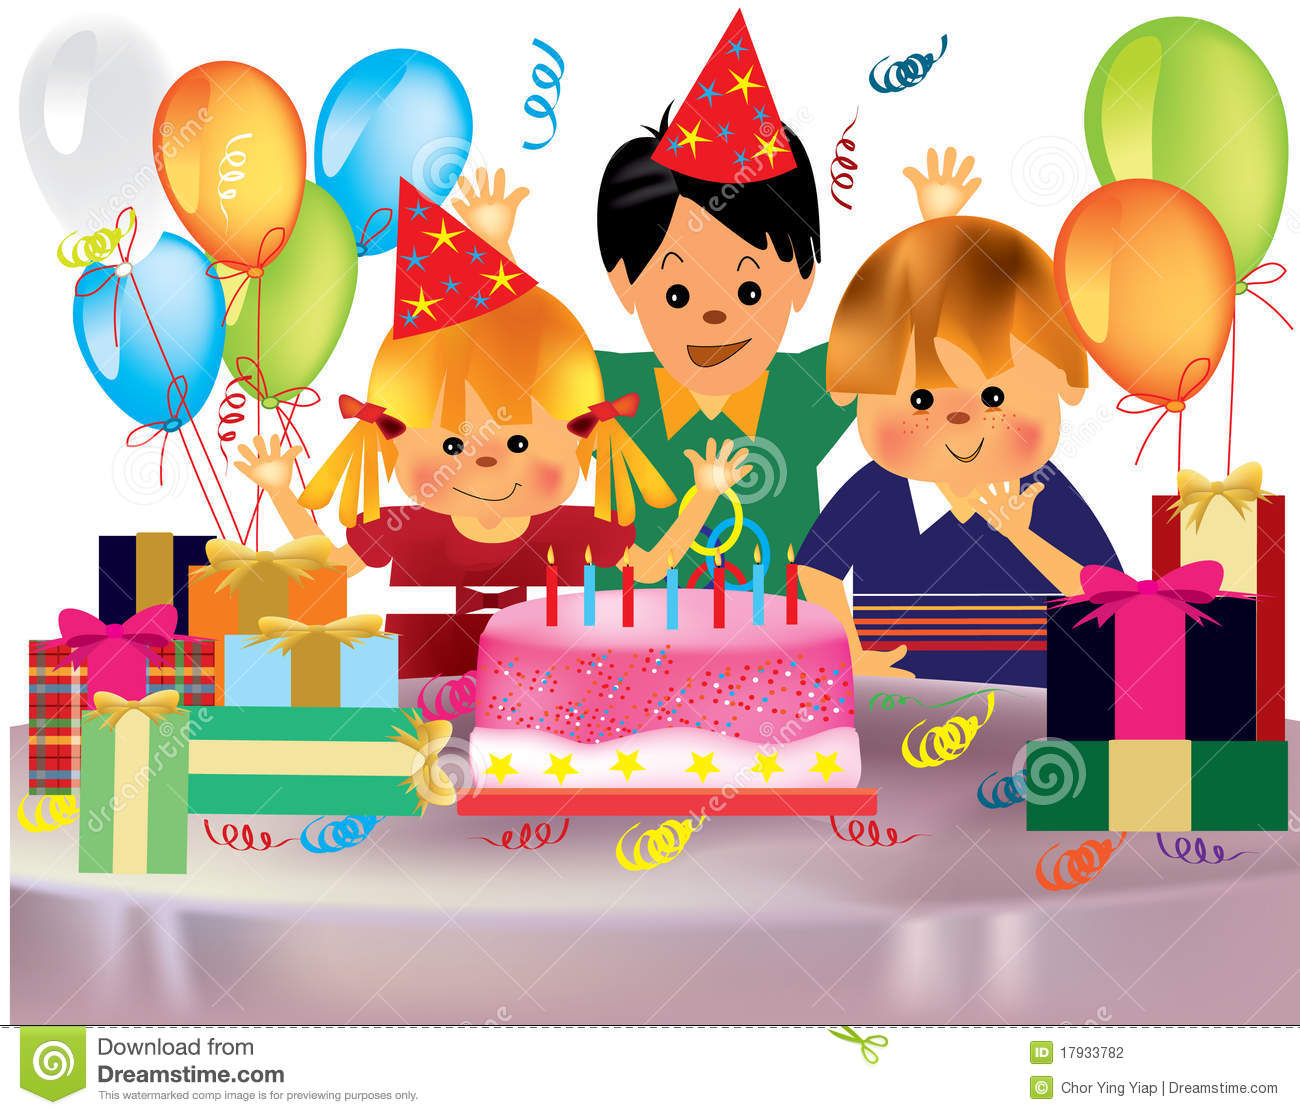 Birthday Party Clip Art Images - Clipart-Birthday party clip art images - ClipartFest-5